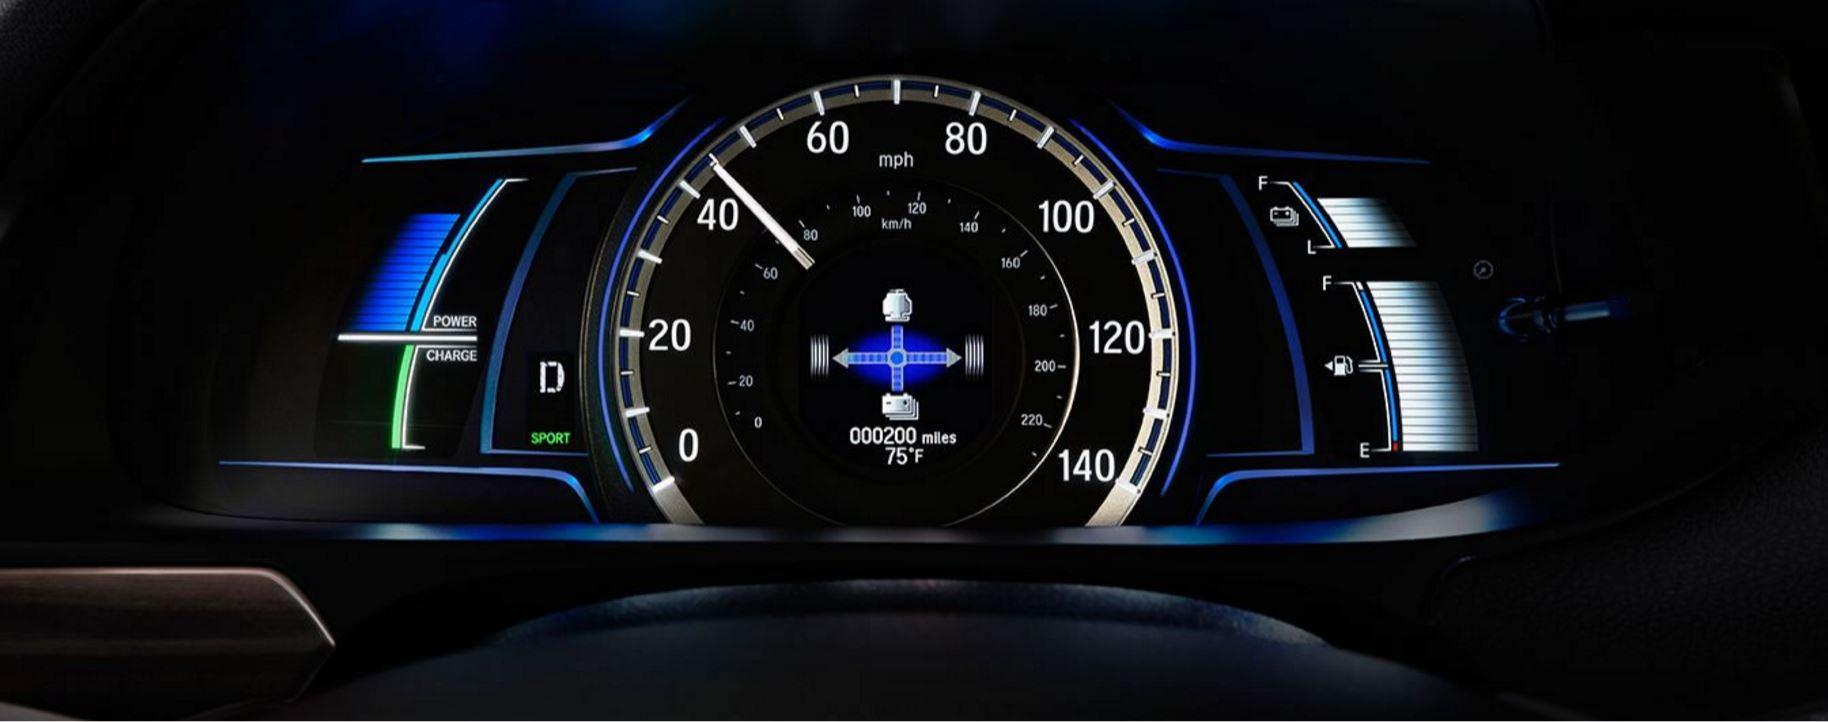 2017 Honda Accord Speedometer